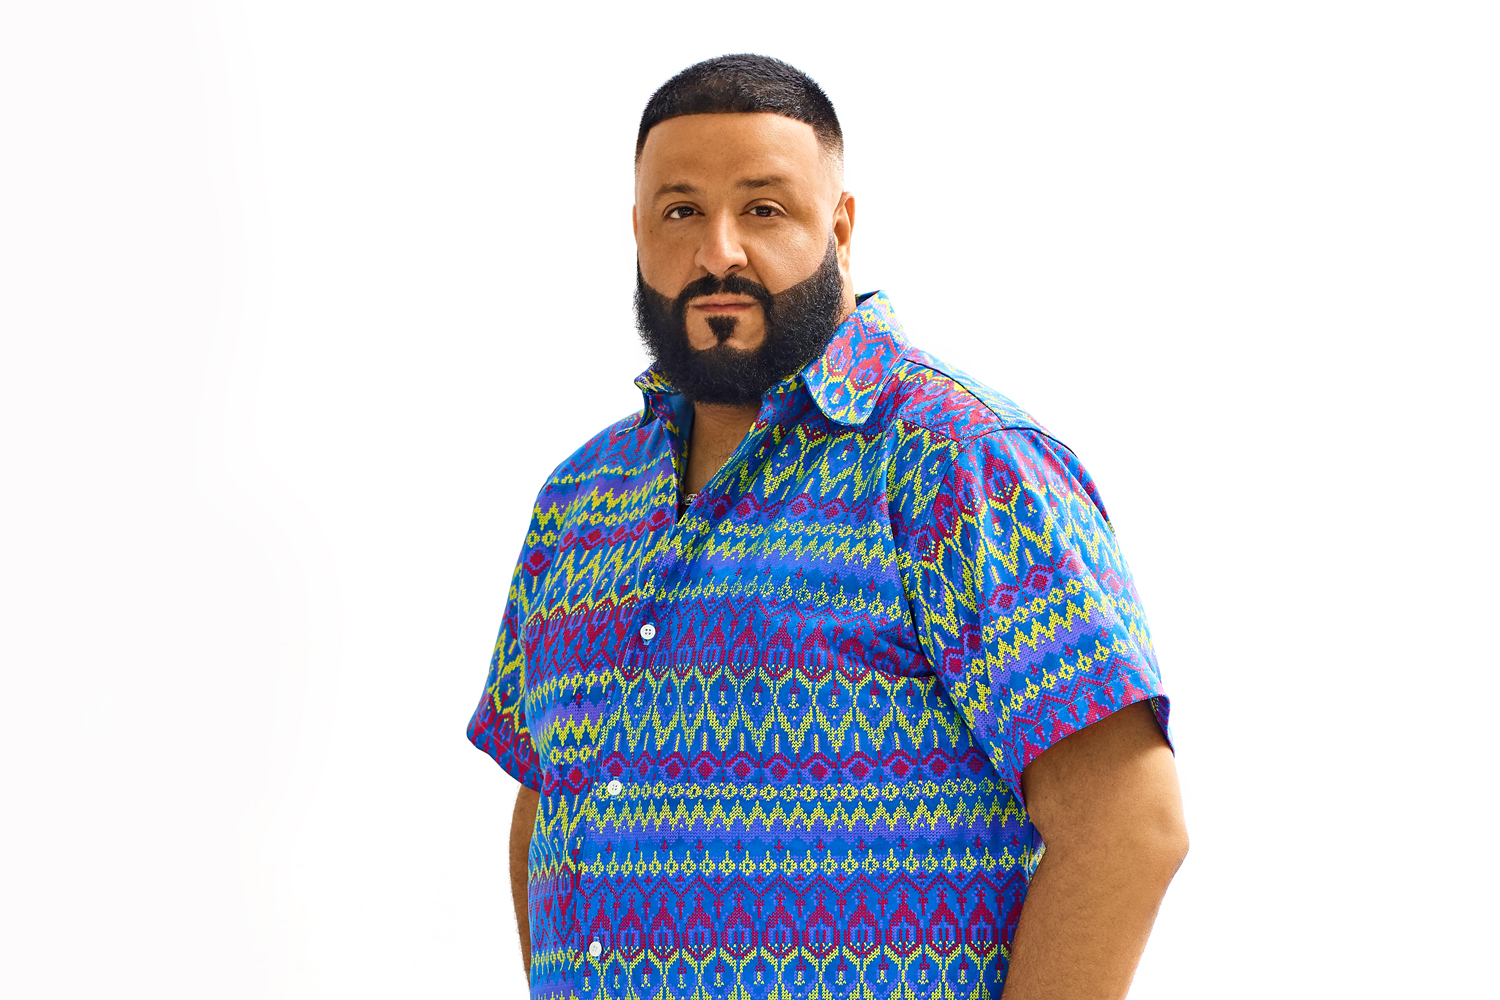 b6cab6802e3 DJ Khaled's Brand Wears Thinner on 'Father of Asahd' – Rolling Stone